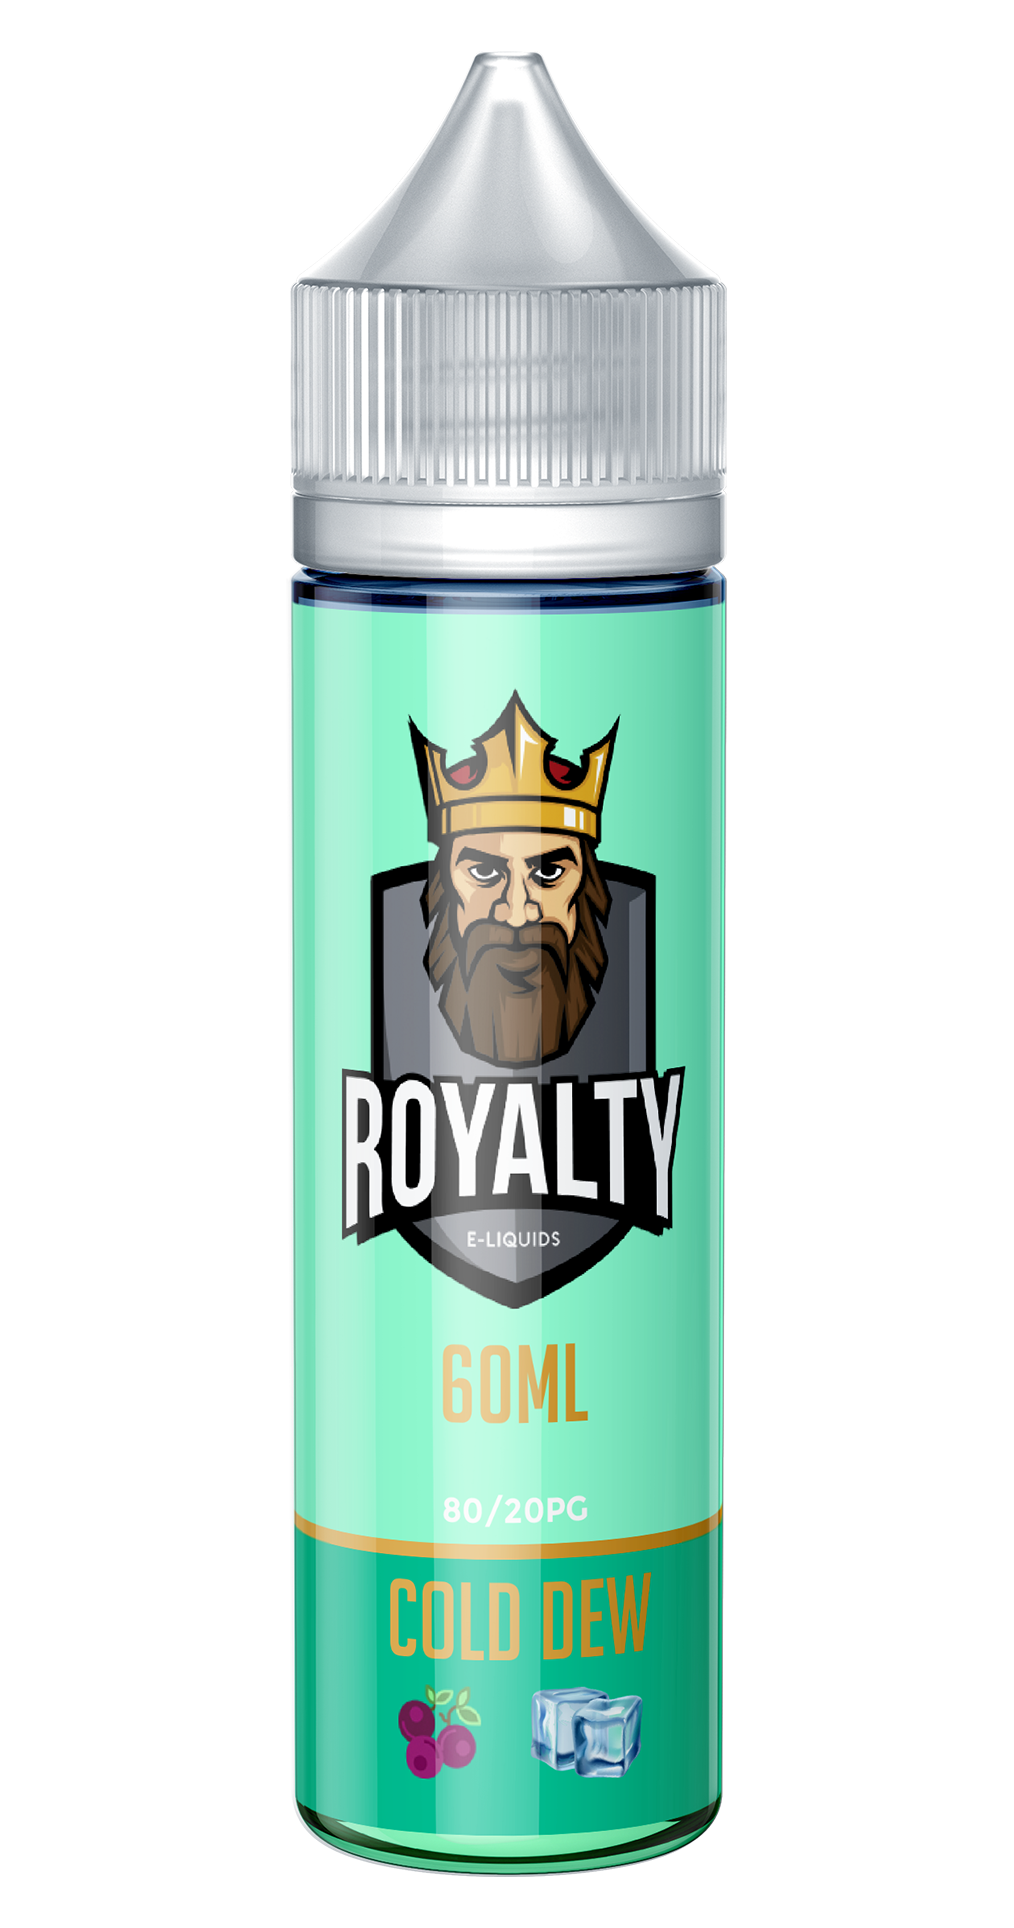 Cold Dew Royalty E-liquids